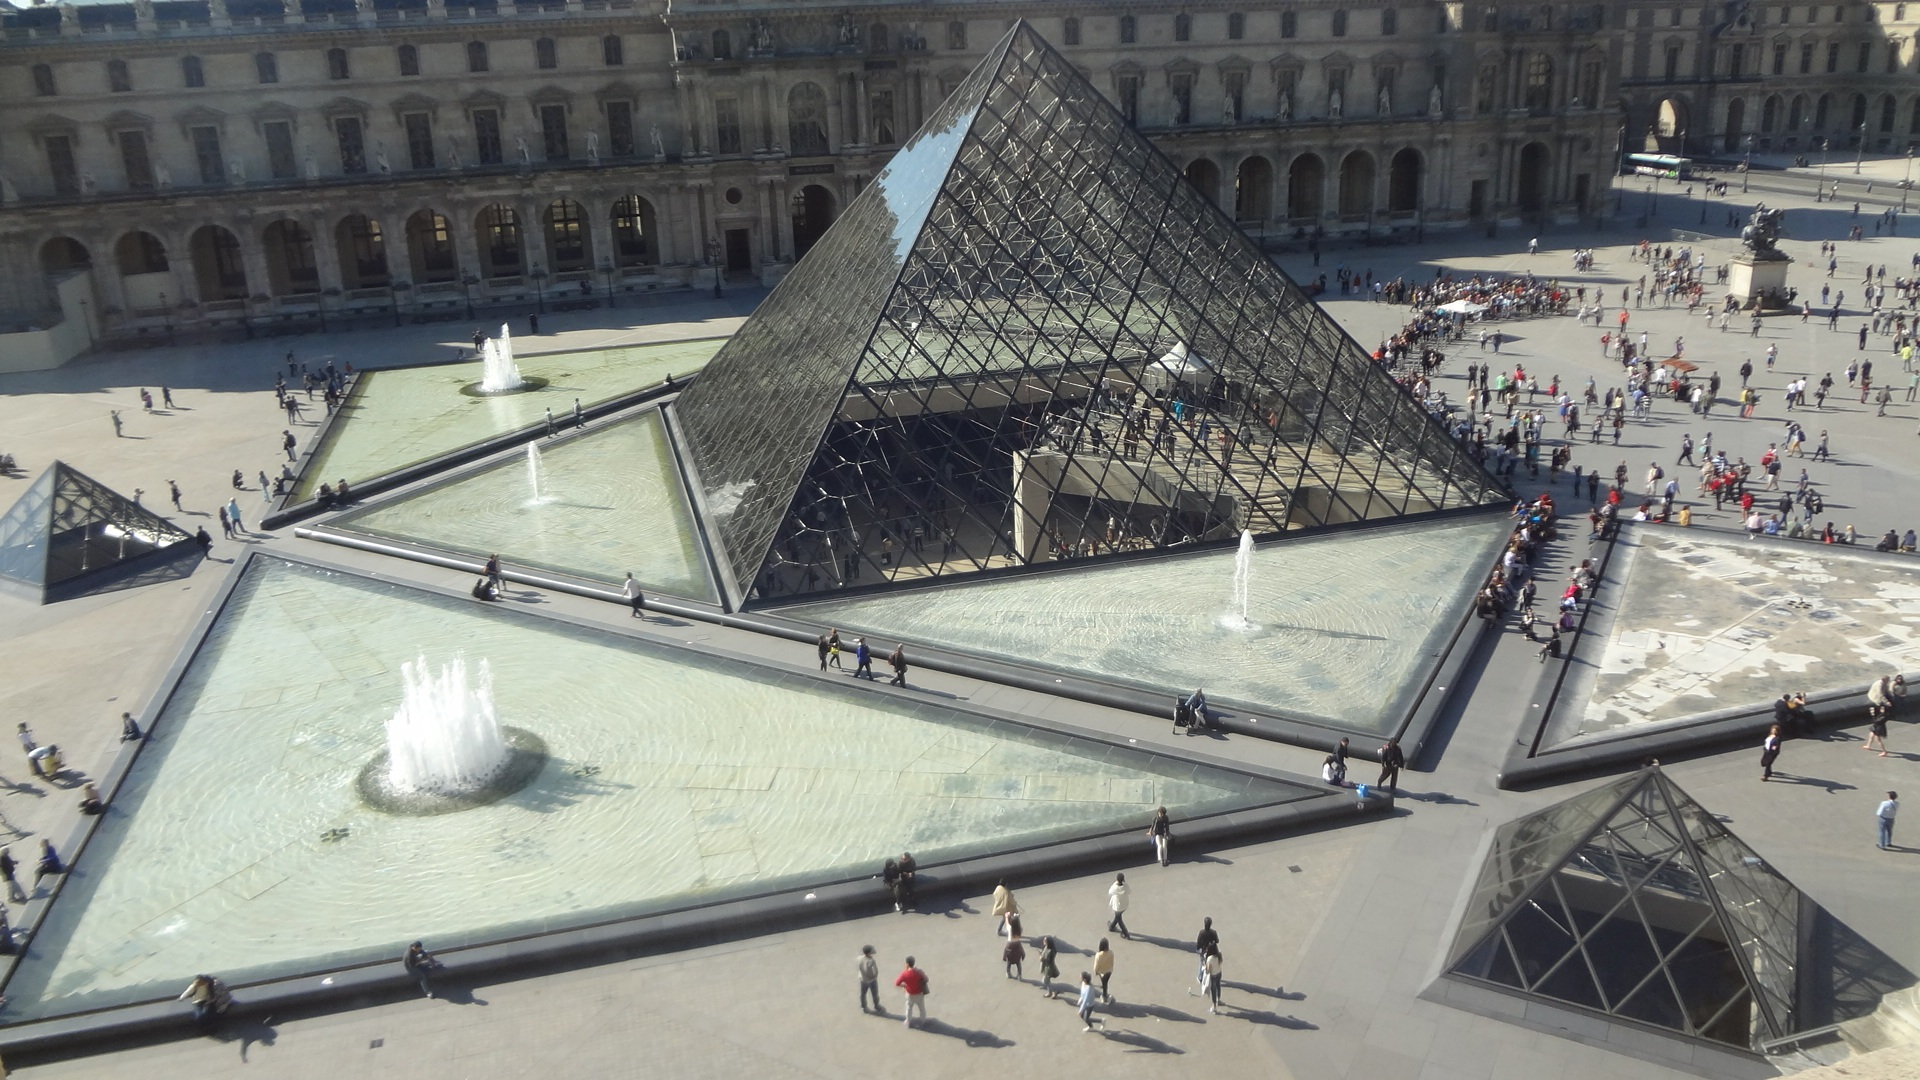 Pyramid, Louvre, Paris, France